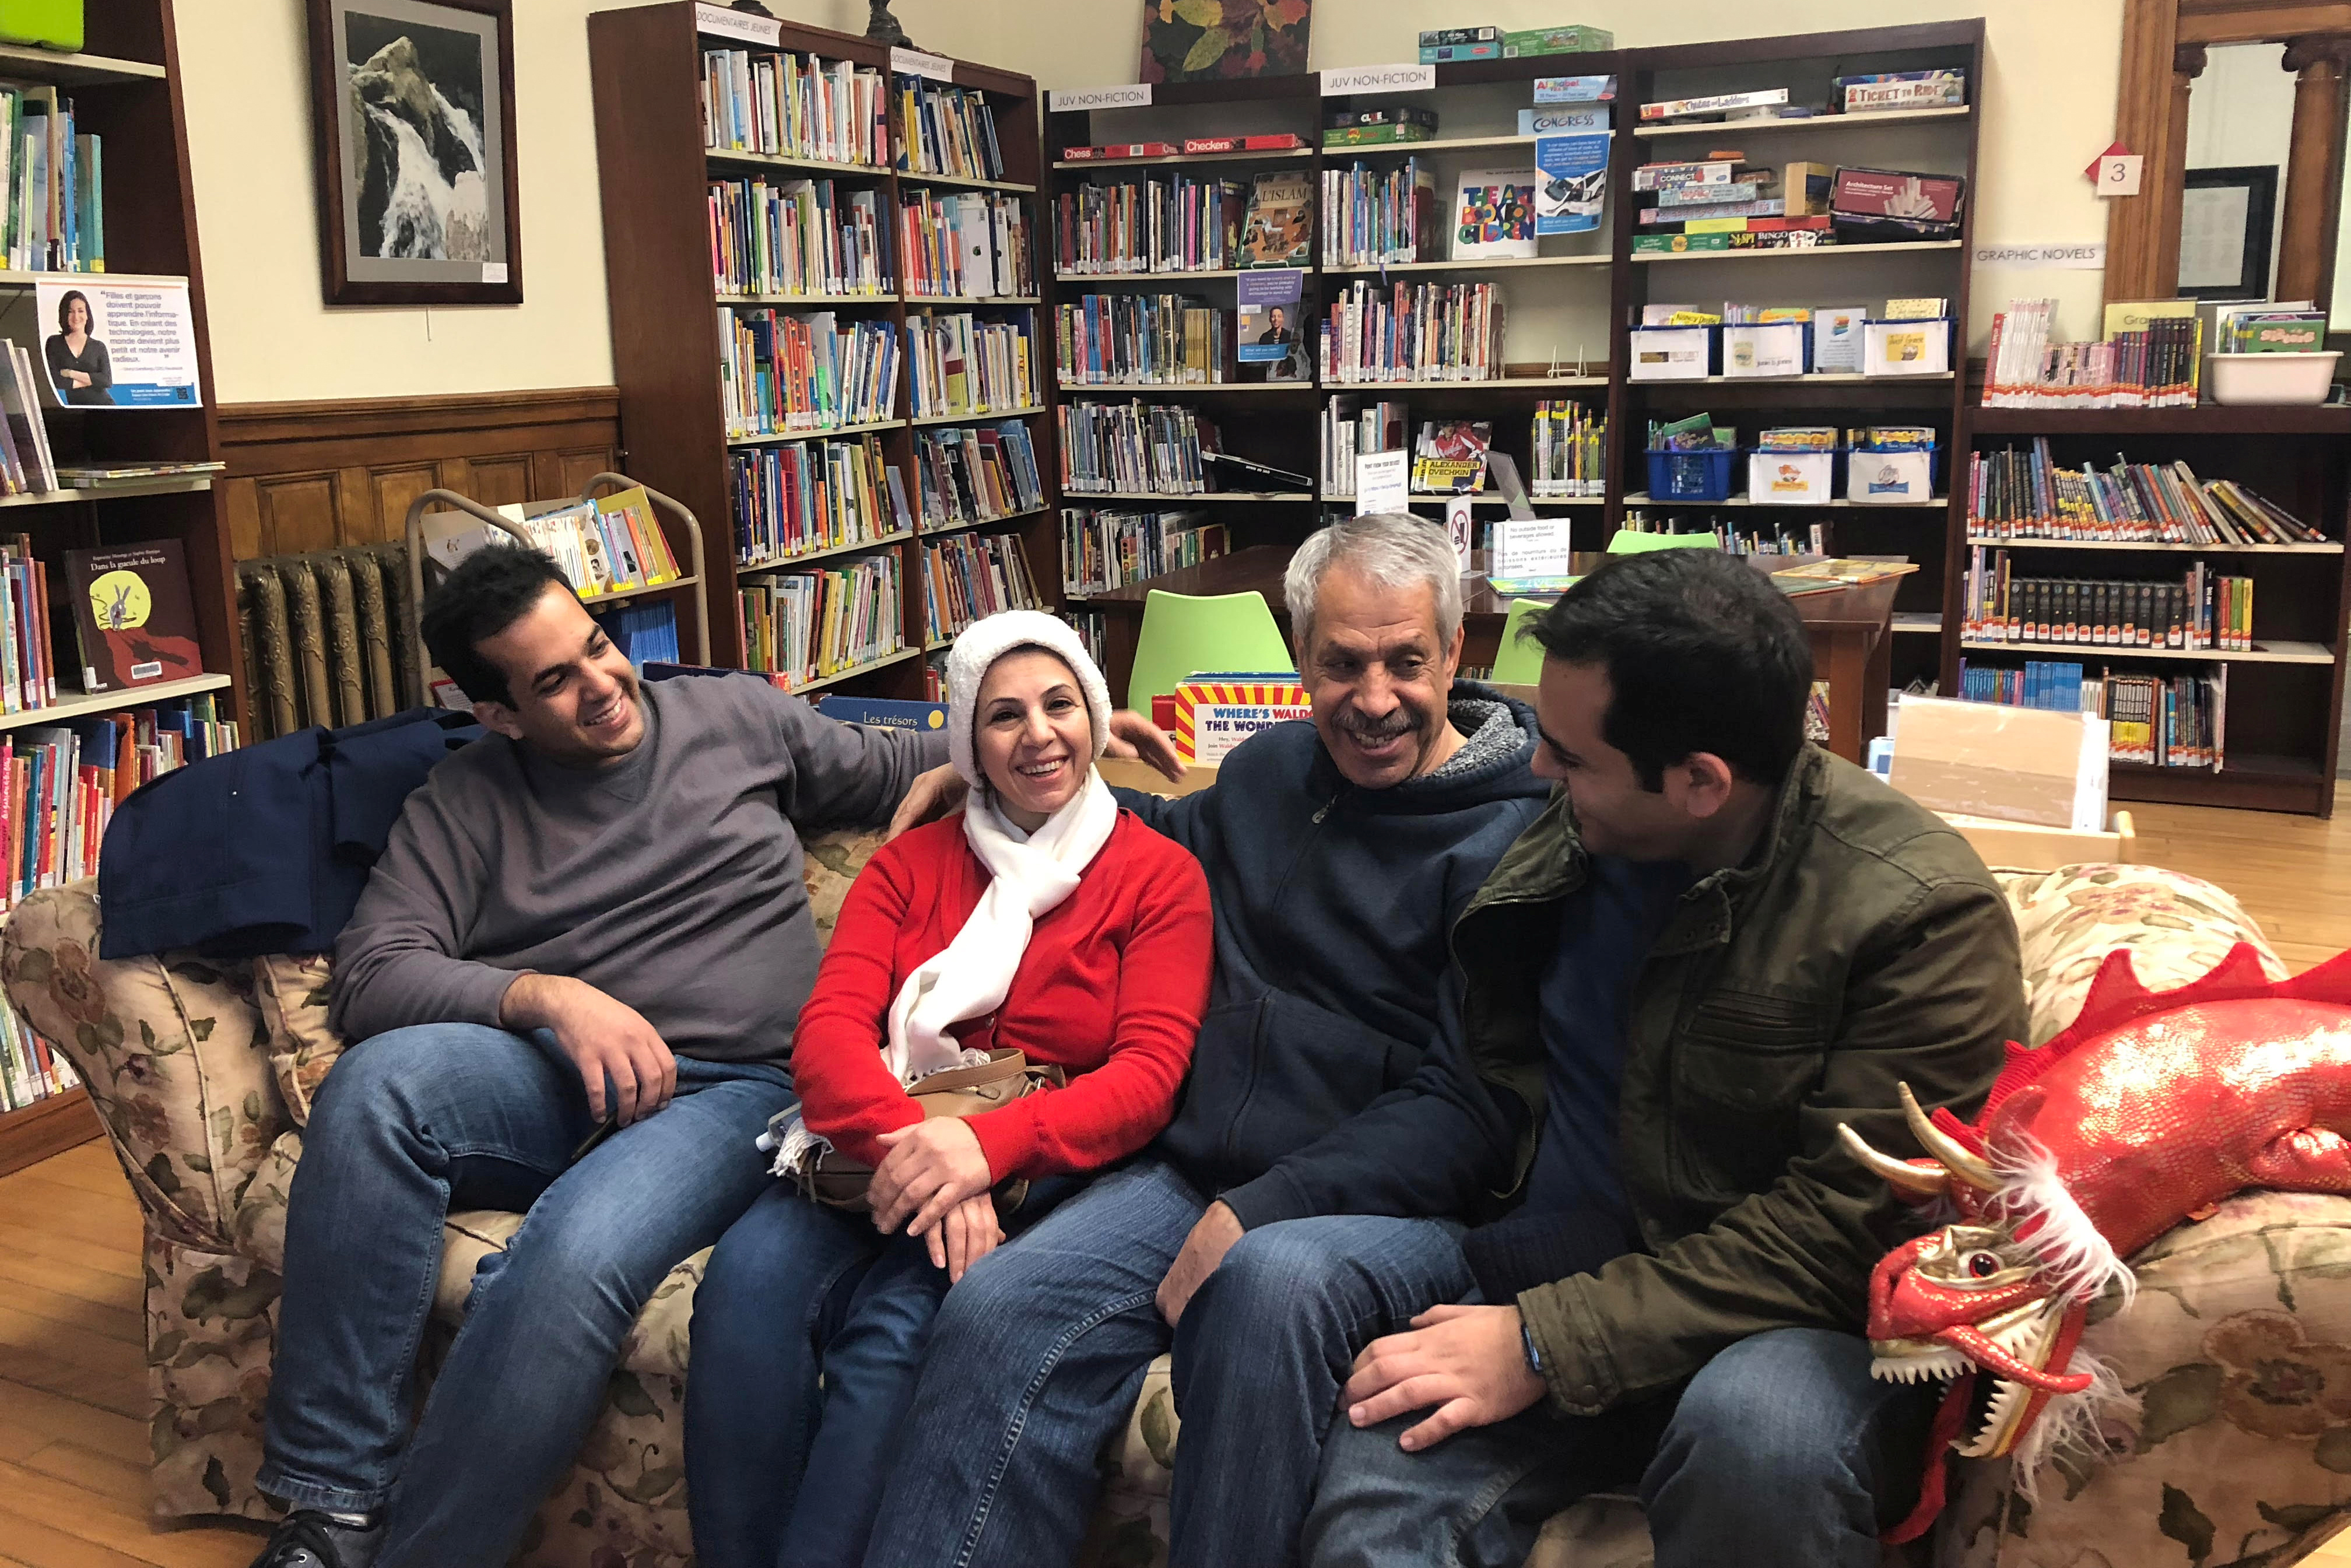 An Iranian family reunites at the Haskell Free Library and Opera House, which straddles the U.S.-Canada border in Stanstead, Quebec and in Derby Line, Vermont, U.S., November 3, 2018. Picture taken November 3, 2018. To match Insight USA-IMMIGRATION/BAN   REUTERS/Yeganeh Torbati